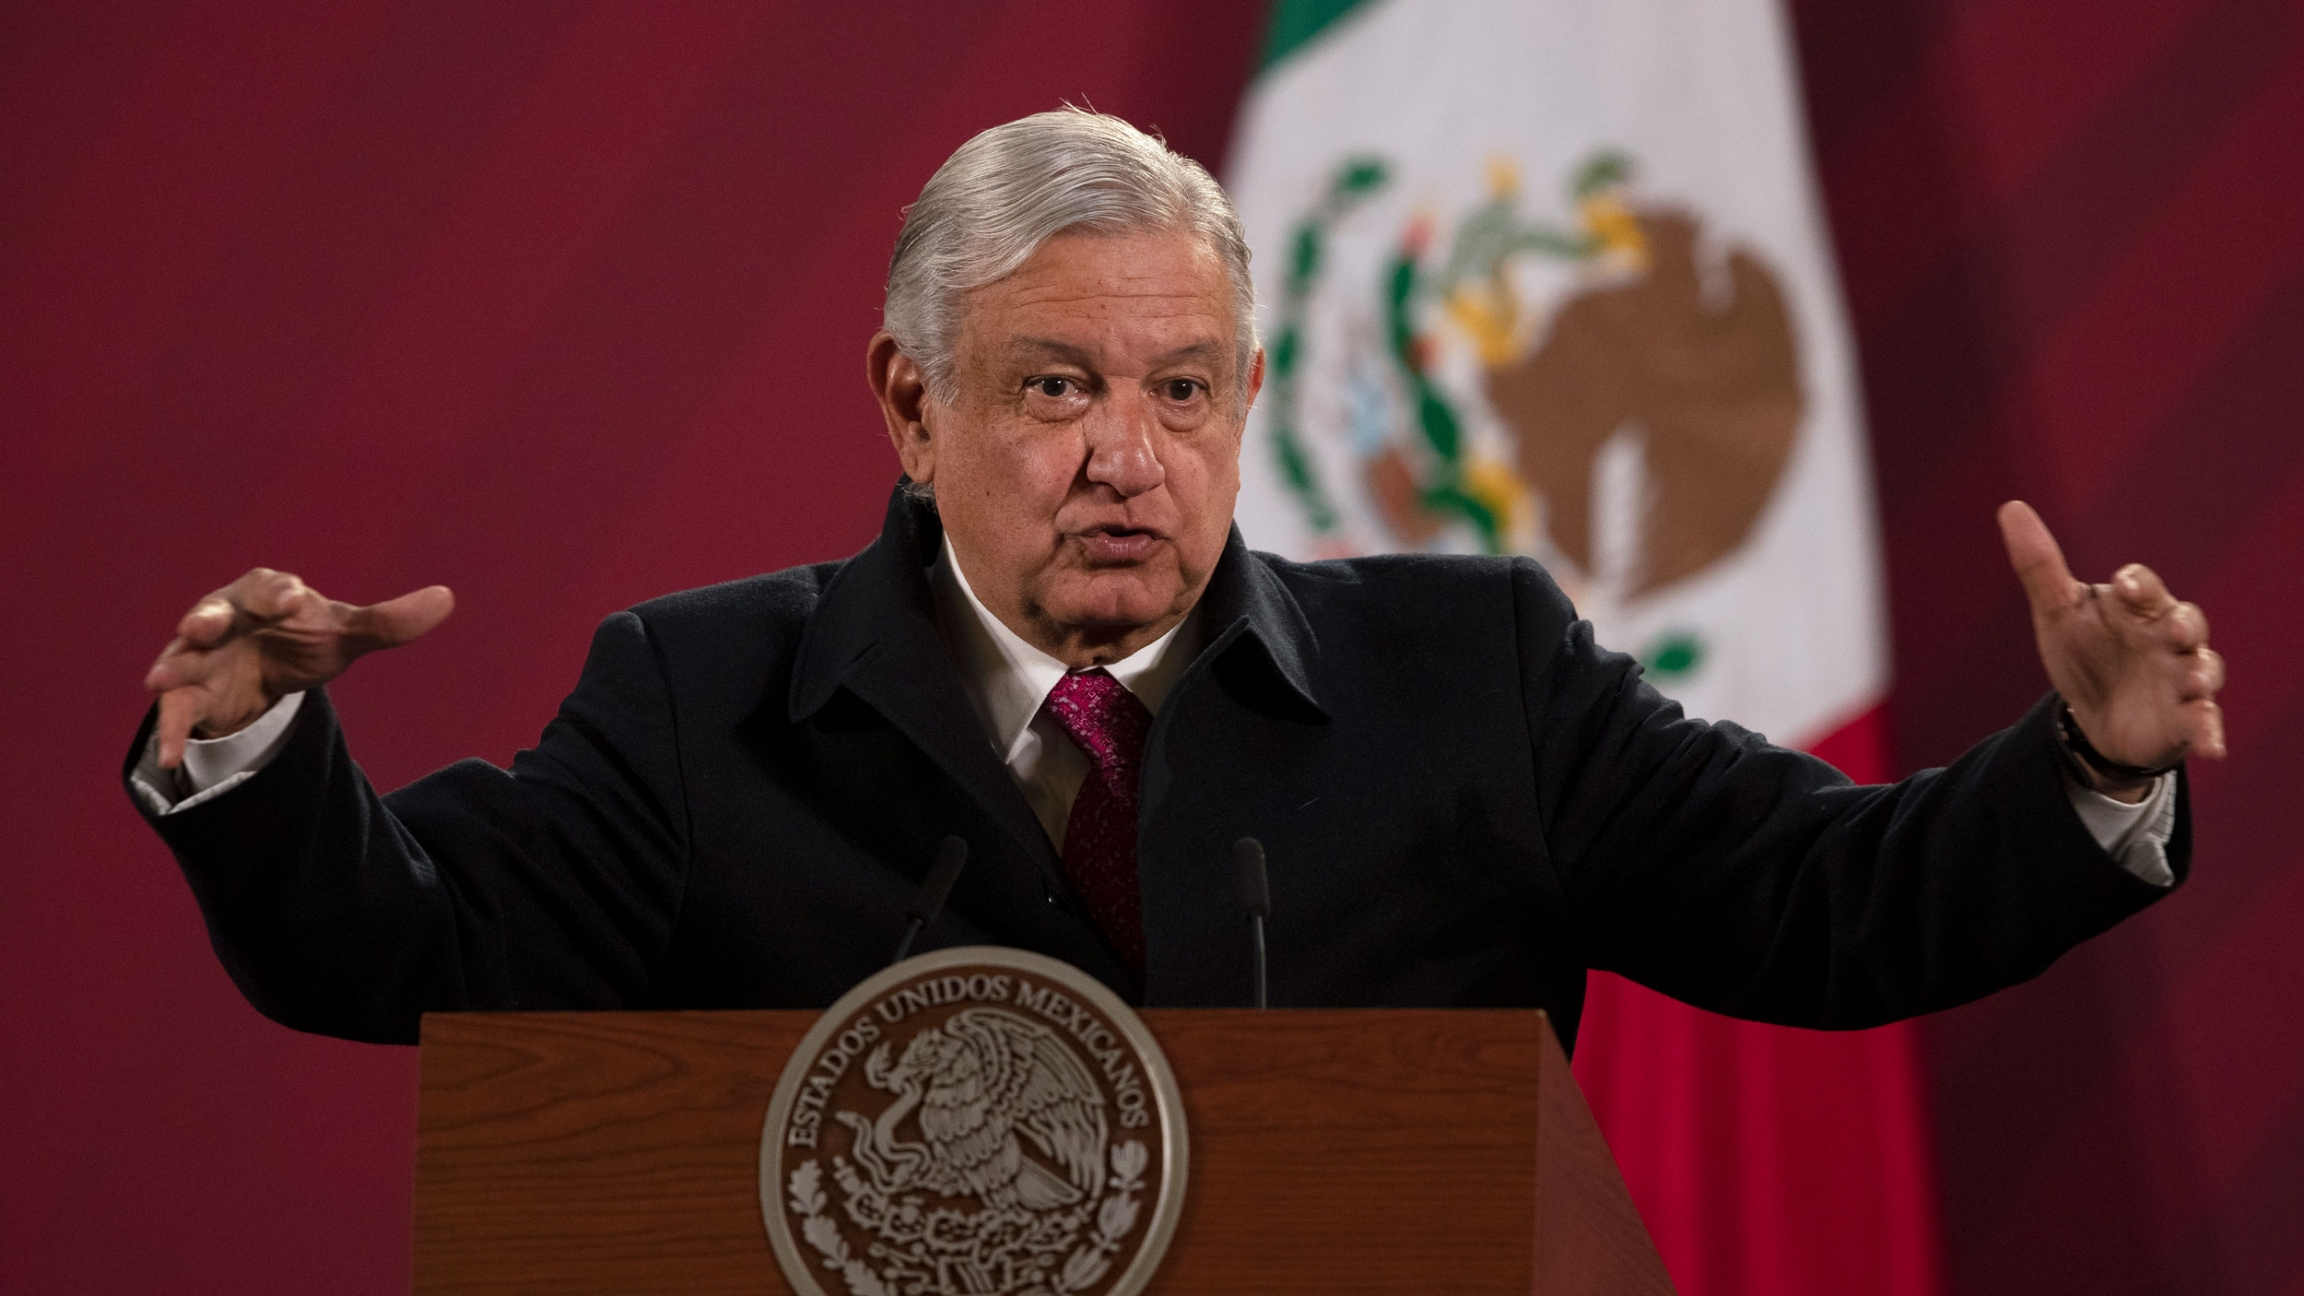 Mexican President Andrés Manuel López Obrador is shown speaking while standing behind a podium with his arms outstretched.